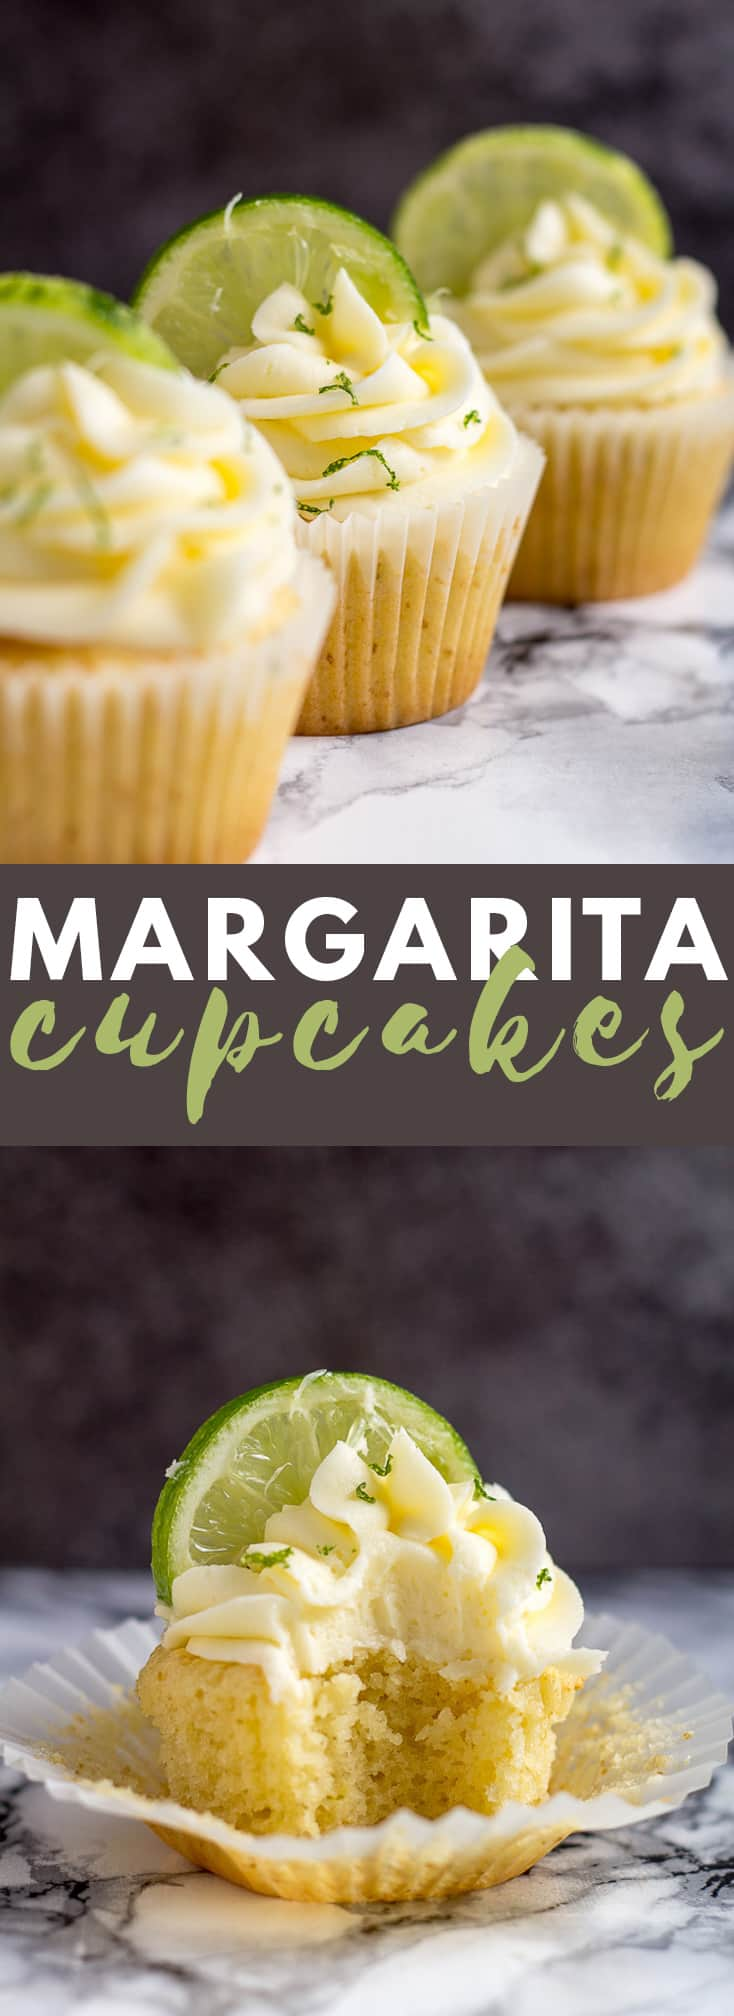 Margarita Cupcakes- Deliciously moist and fluffy cupcakes infused with lime and tequila, and topped with a tequila buttercream frosting! #margarita #cupcakes #cupcakerecipes #summerrecipes